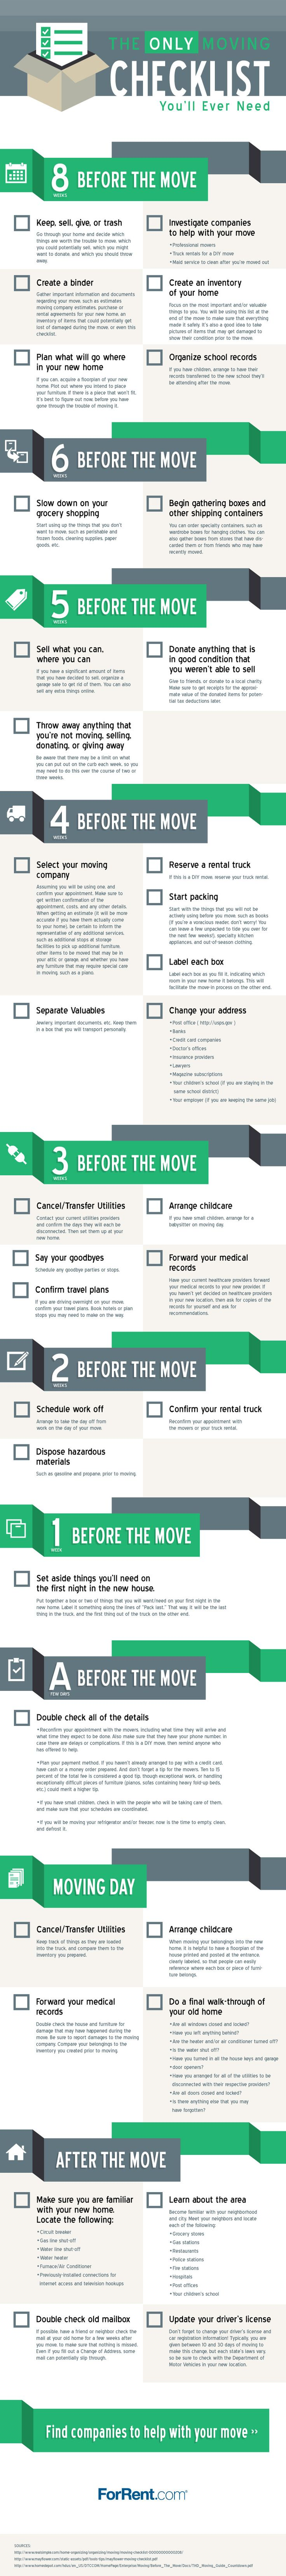 There's no denying it, moving is a huge hassle. Help yourself out, make the move a lot easier with this simple but robust, moving checklist.